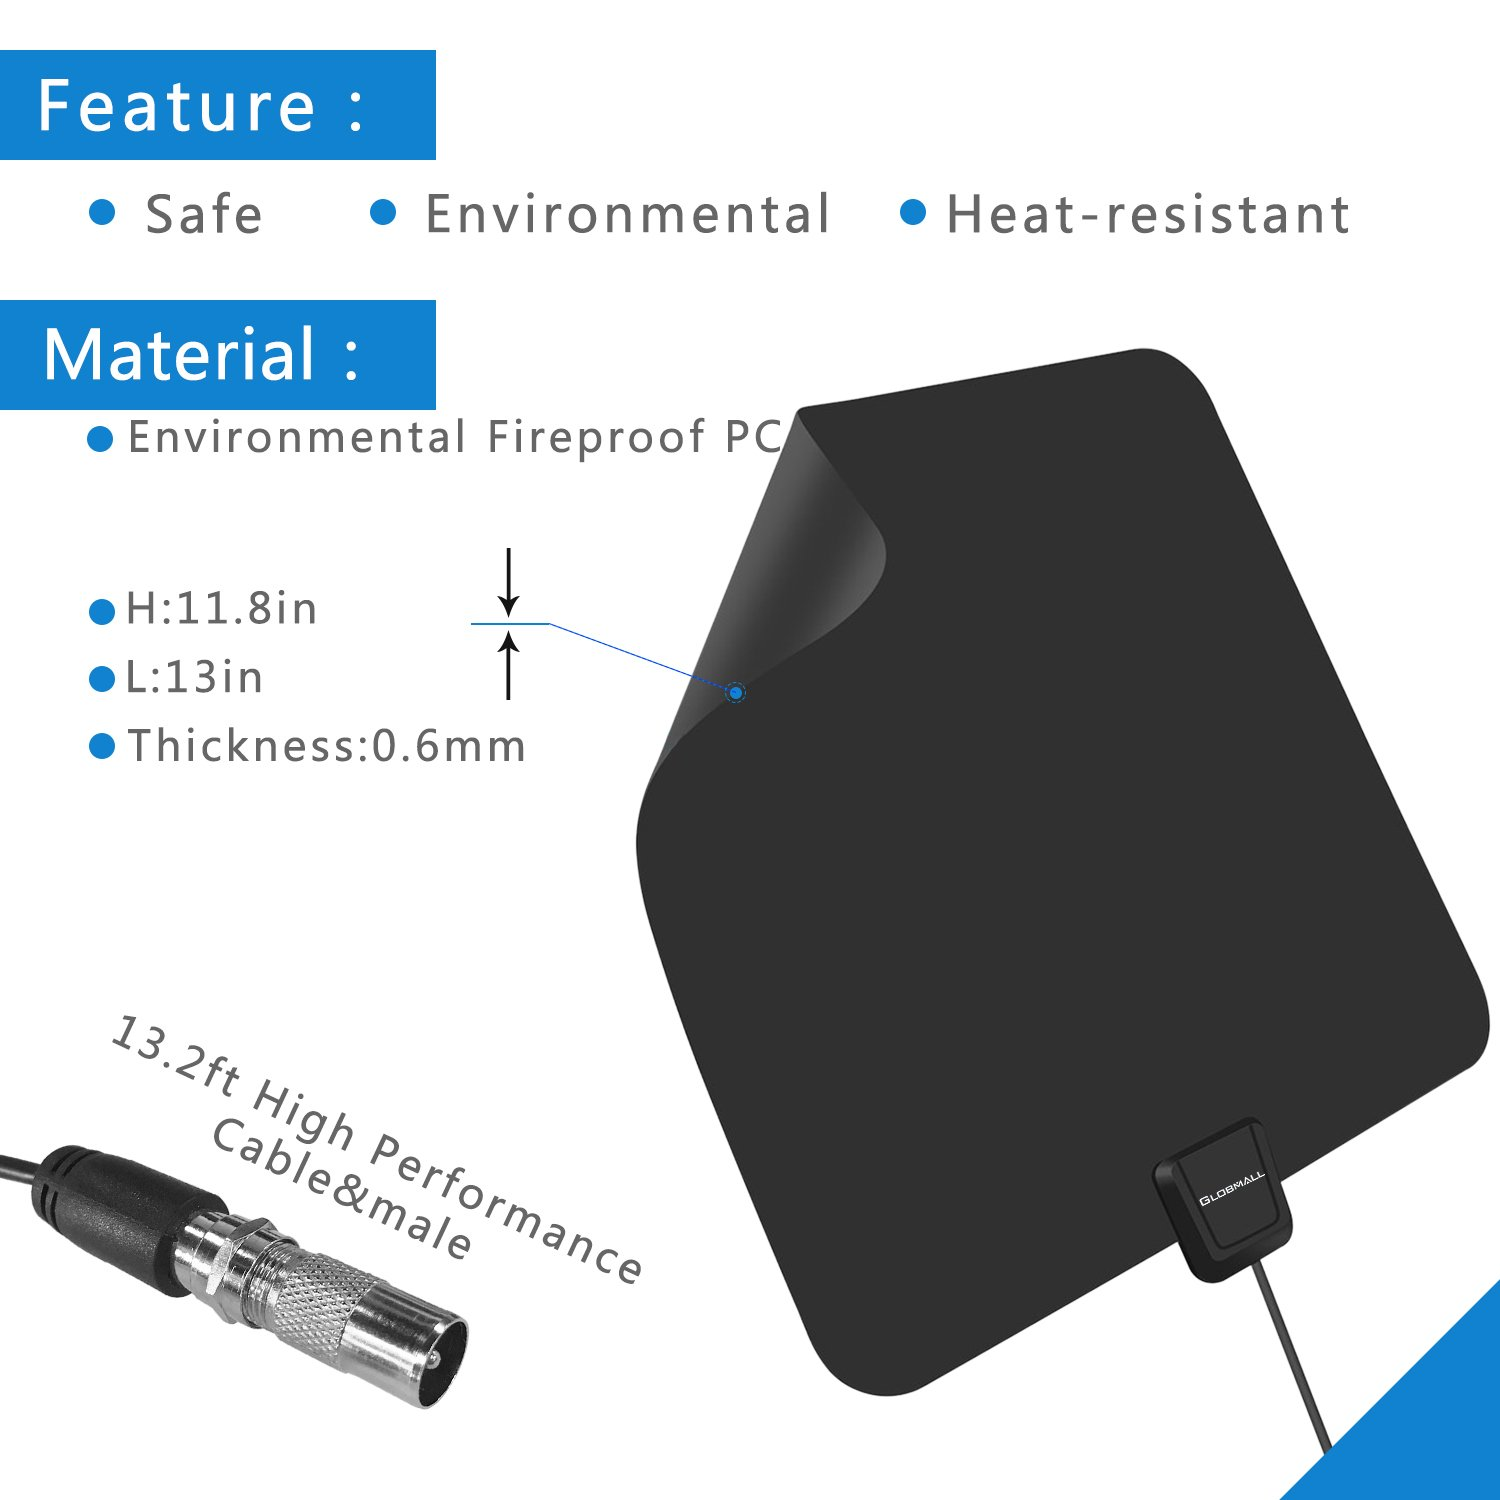 TV Aerial, Globmall Ultra-Thin TV Antenna 50 Miles Distance Detachable Indoor Singal Amplifier Booster, Digital HDTV Aerial 13.2FT Coaxial Cable for Digital Freeview & Analog TV Signals, Soft Design